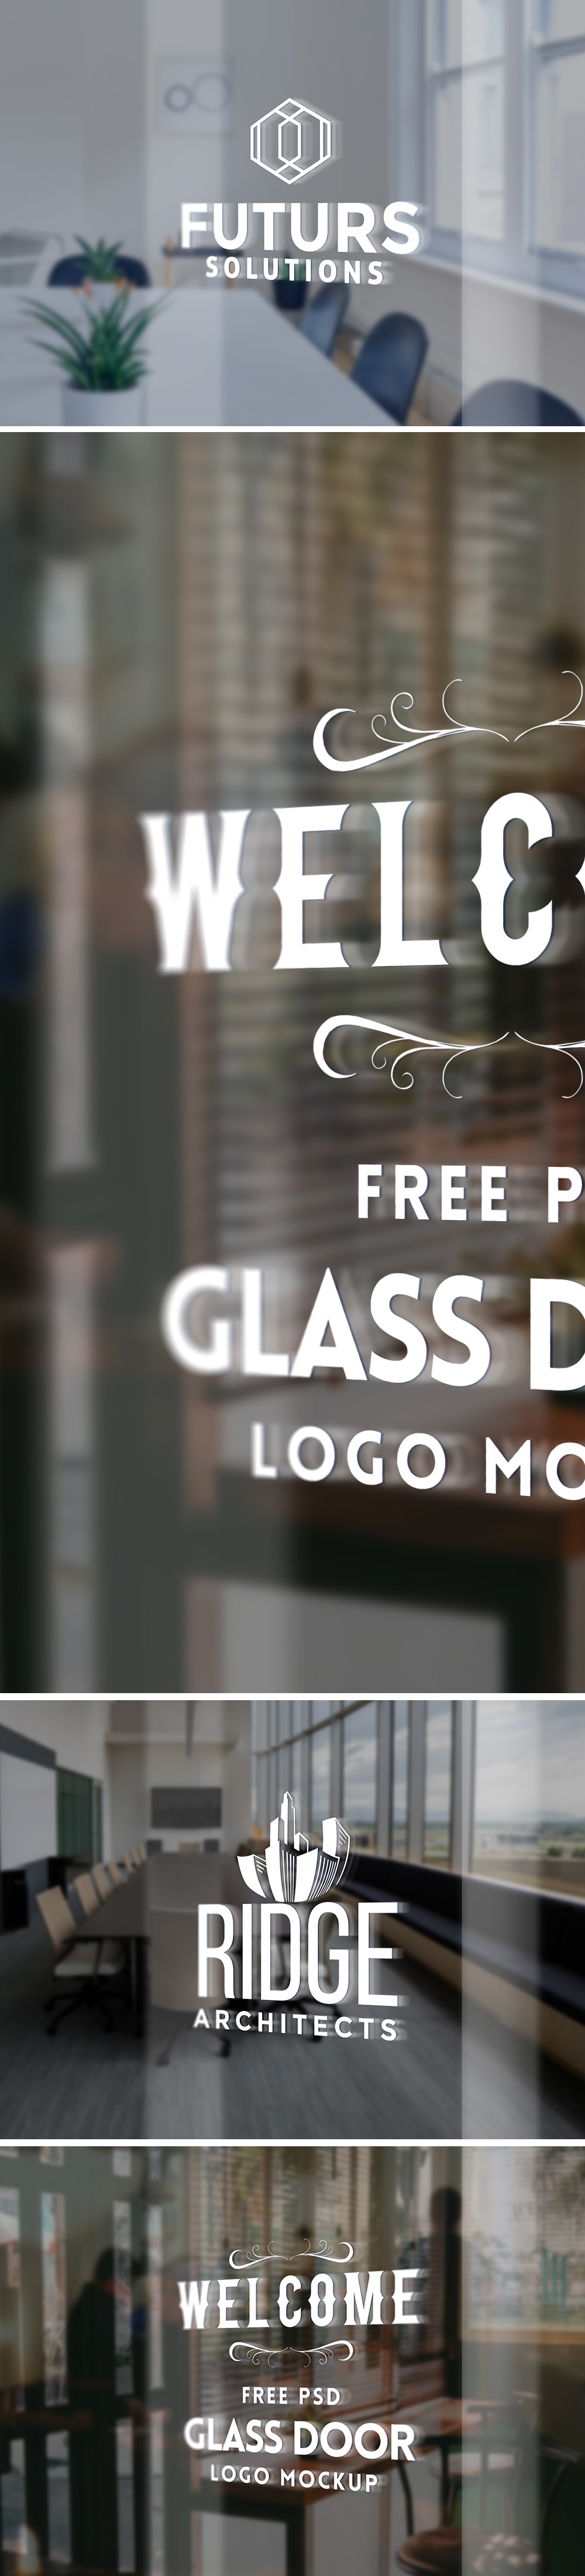 Glass door ups store - Glass Door Logo Mockup Psd